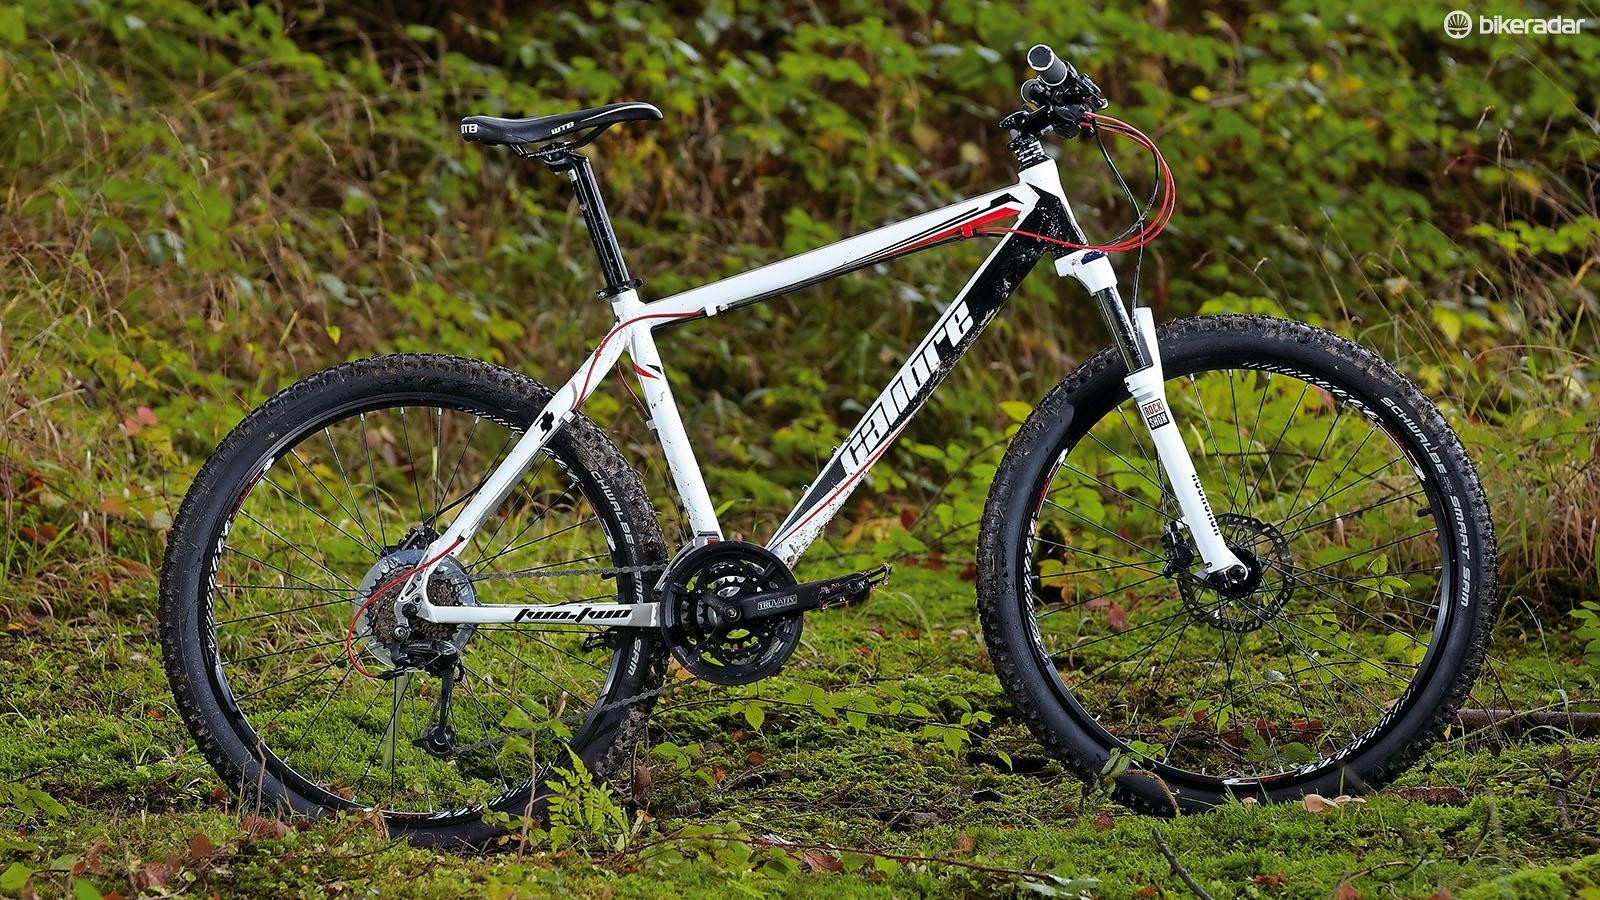 Mountain bikes are great for those that plan on tackling rough terrain